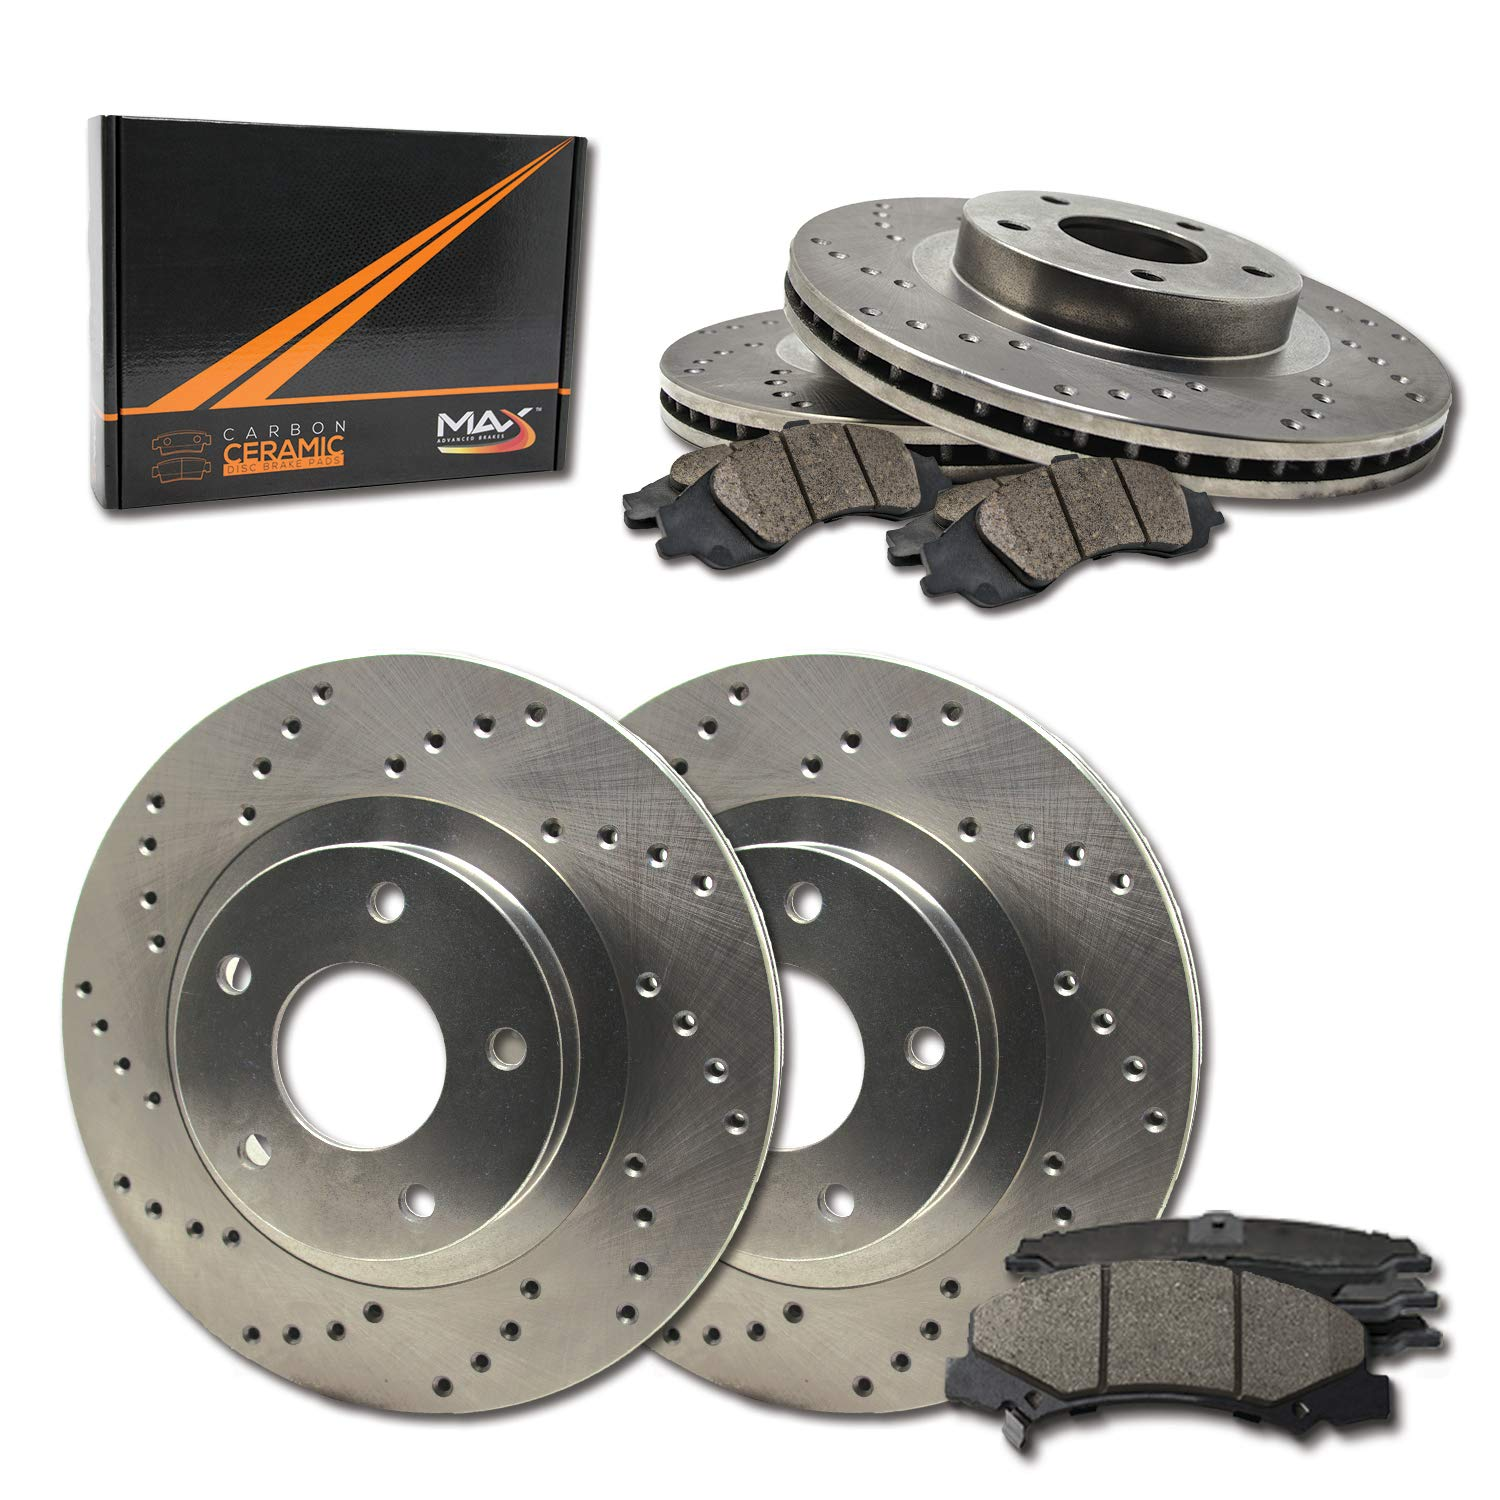 2007-2013 Nissan Altima KT041923 Fits Max Brakes Front /& Rear Performance Brake Kit Premium Cross Drilled Rotors + Ceramic Pads